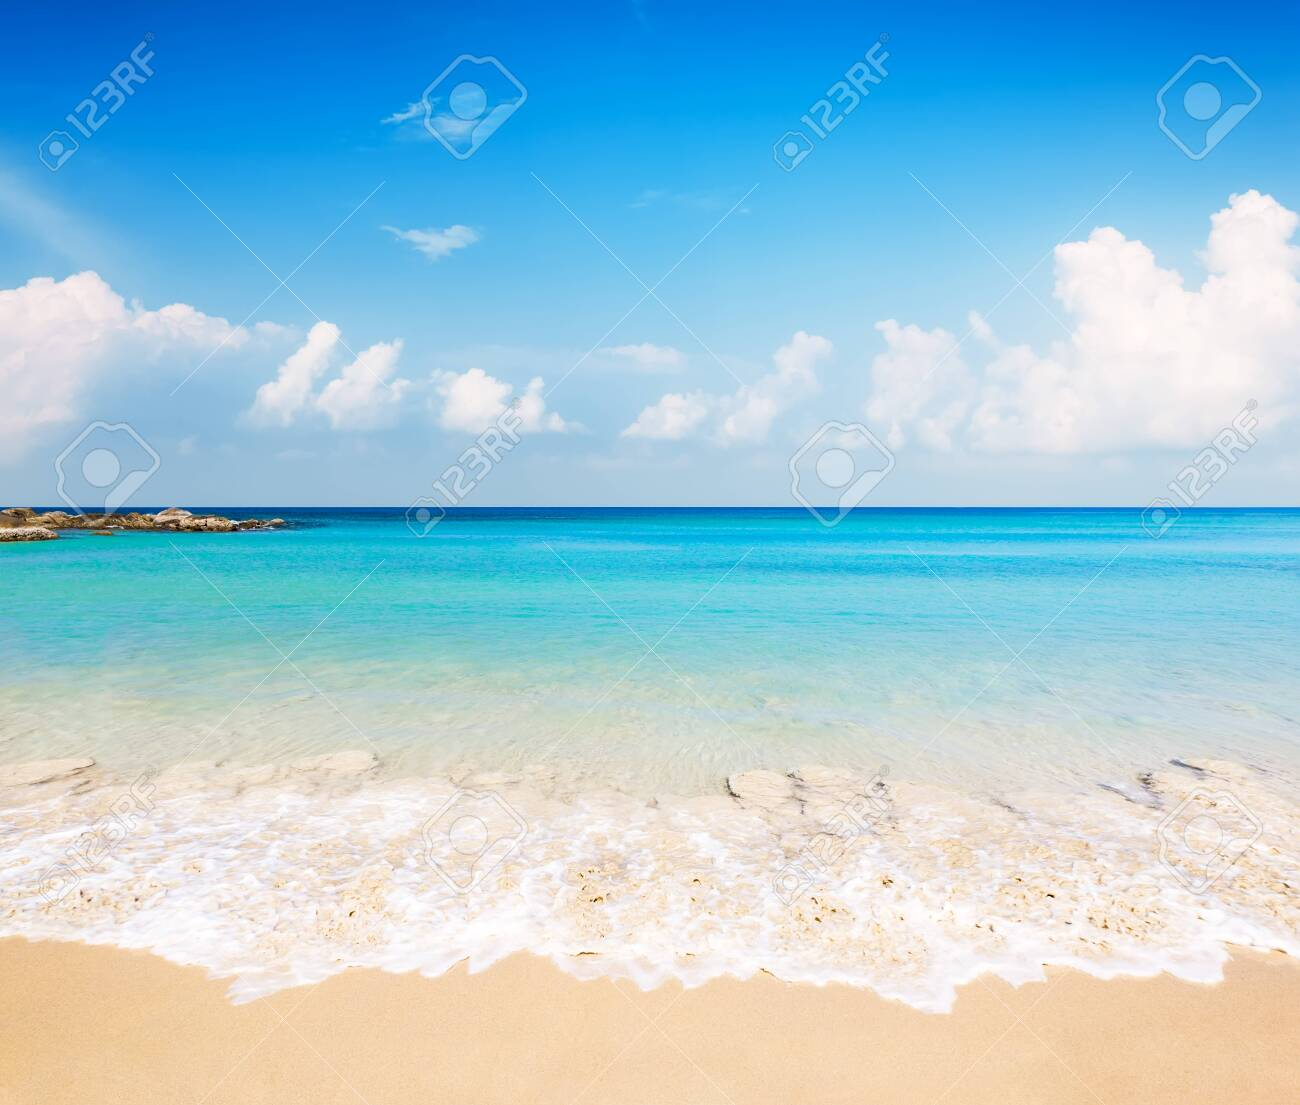 Coconut palm trees against blue sky and beautiful beach in Punta Cana, Dominican Republic. Vacation holidays background wallpaper. View of nice tropical beach. - 126509082